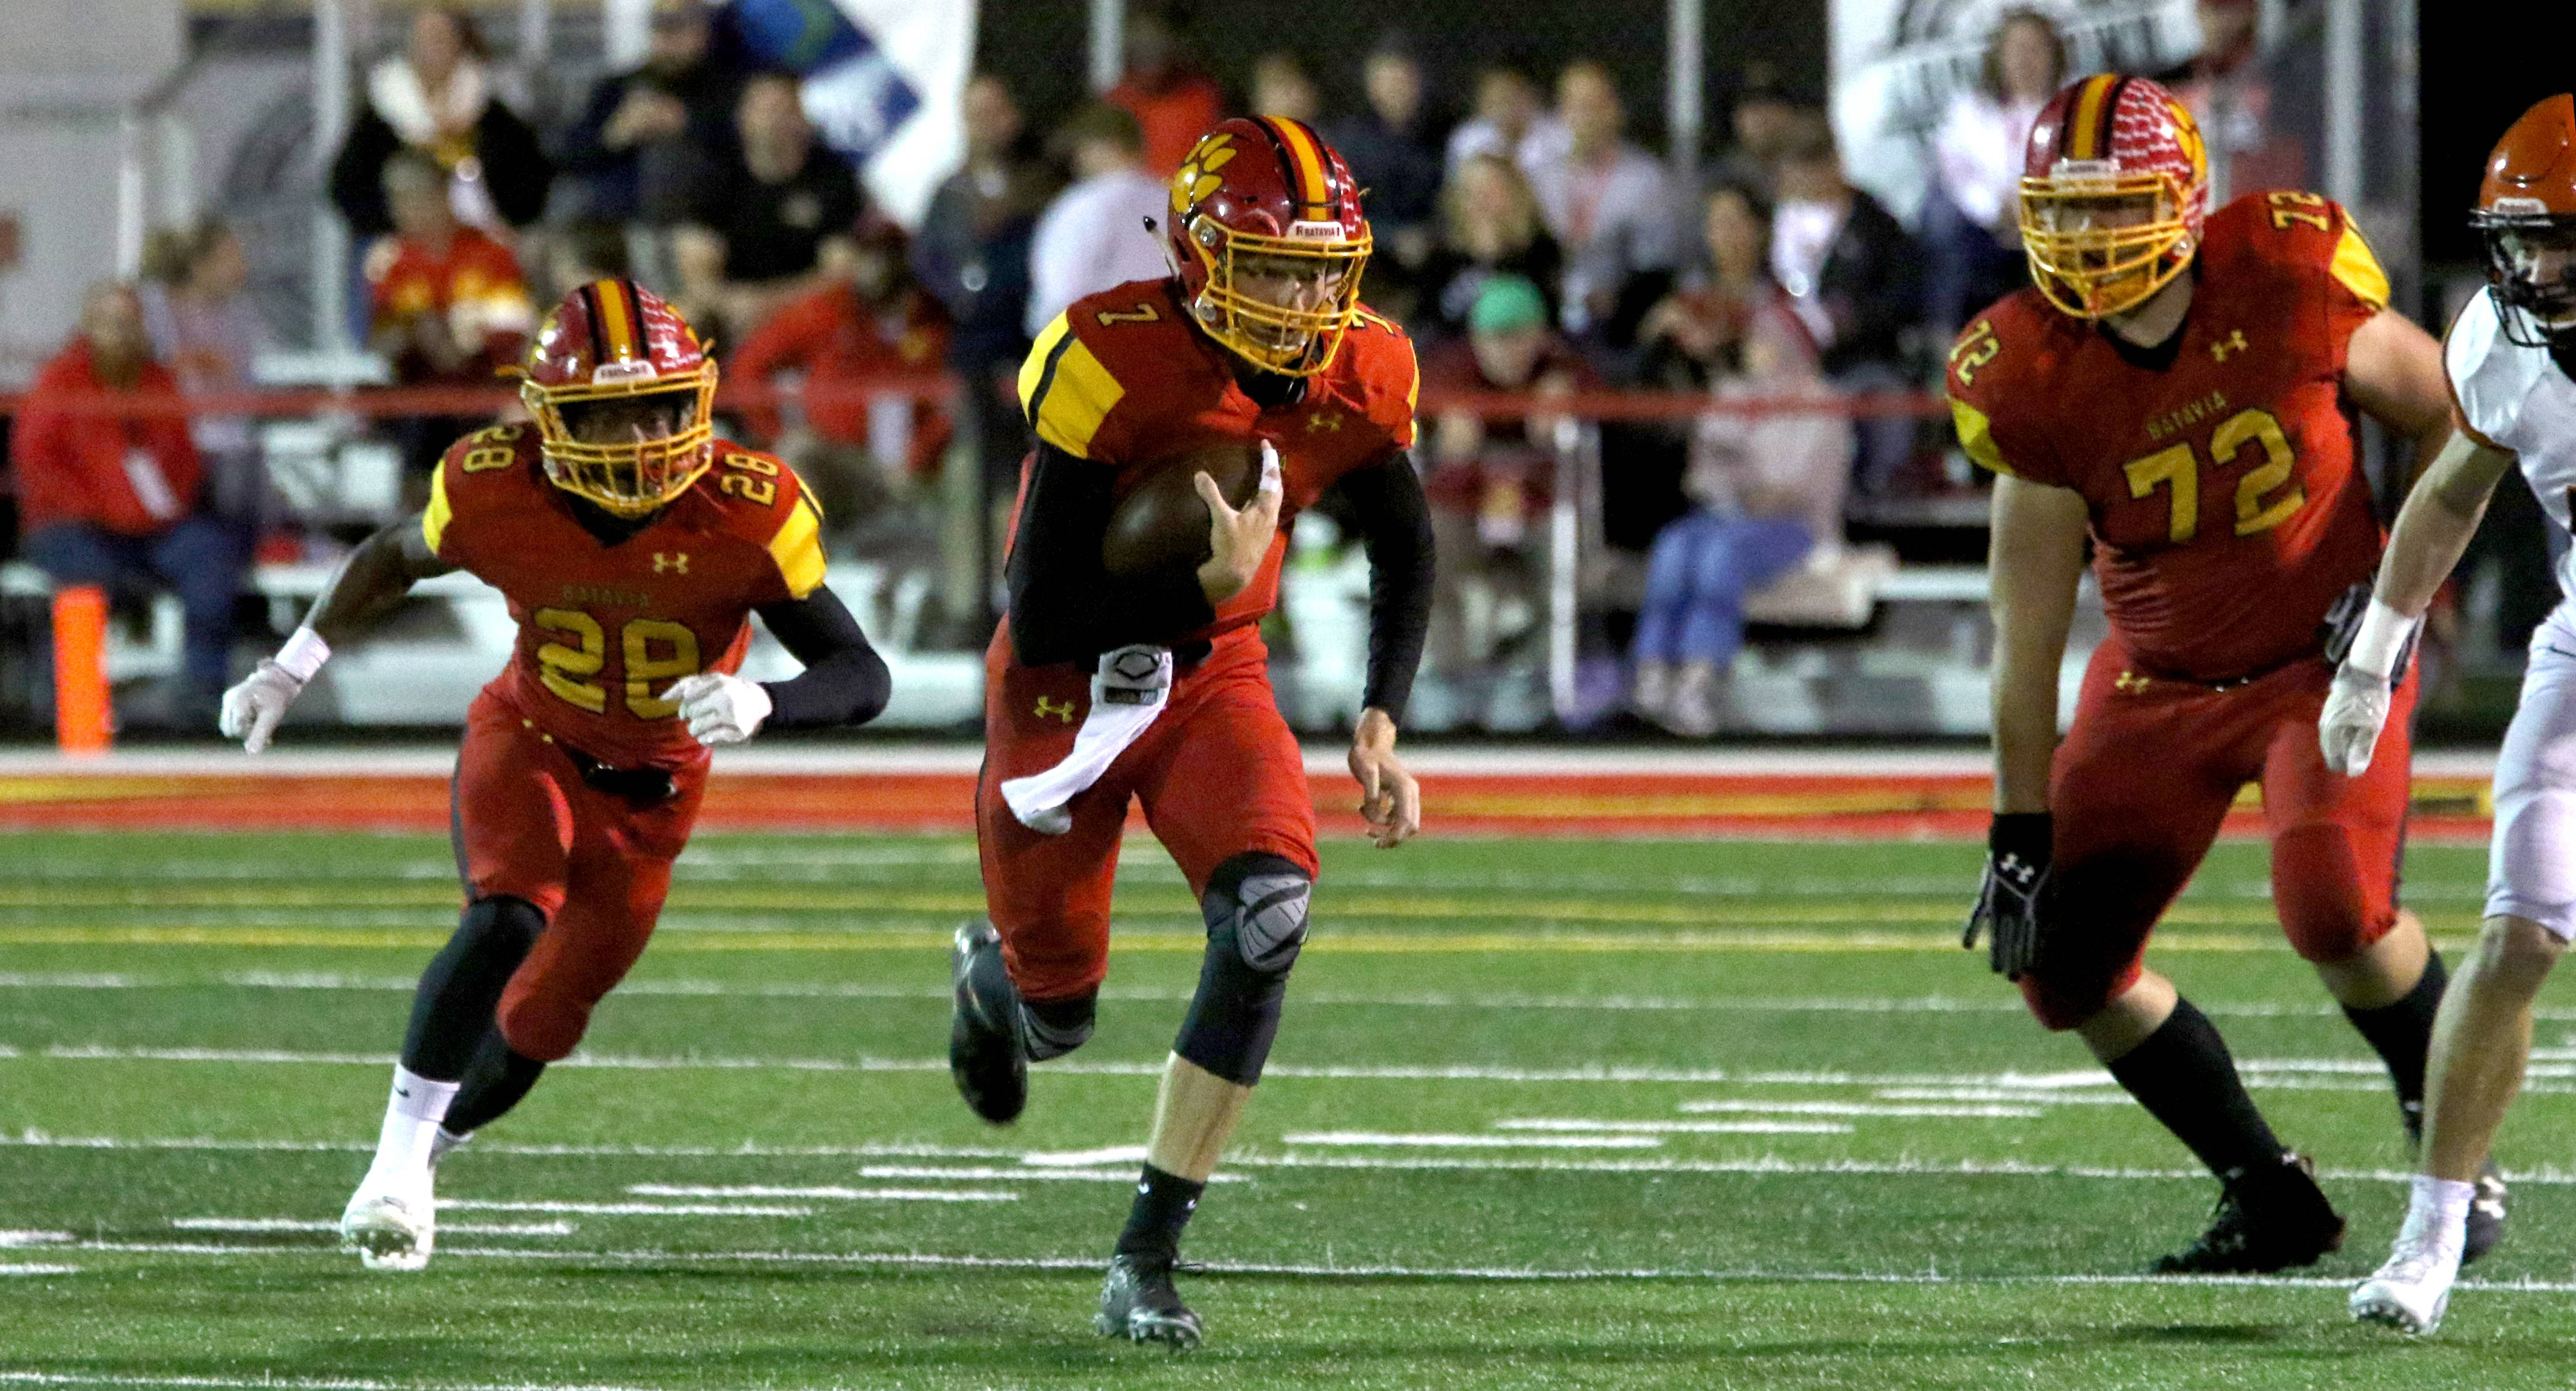 Batavia's Jack Meyers runs the ball against Wheaton Warrenville South during varsity football at Bulldog Stadium in Batavia Friday night.